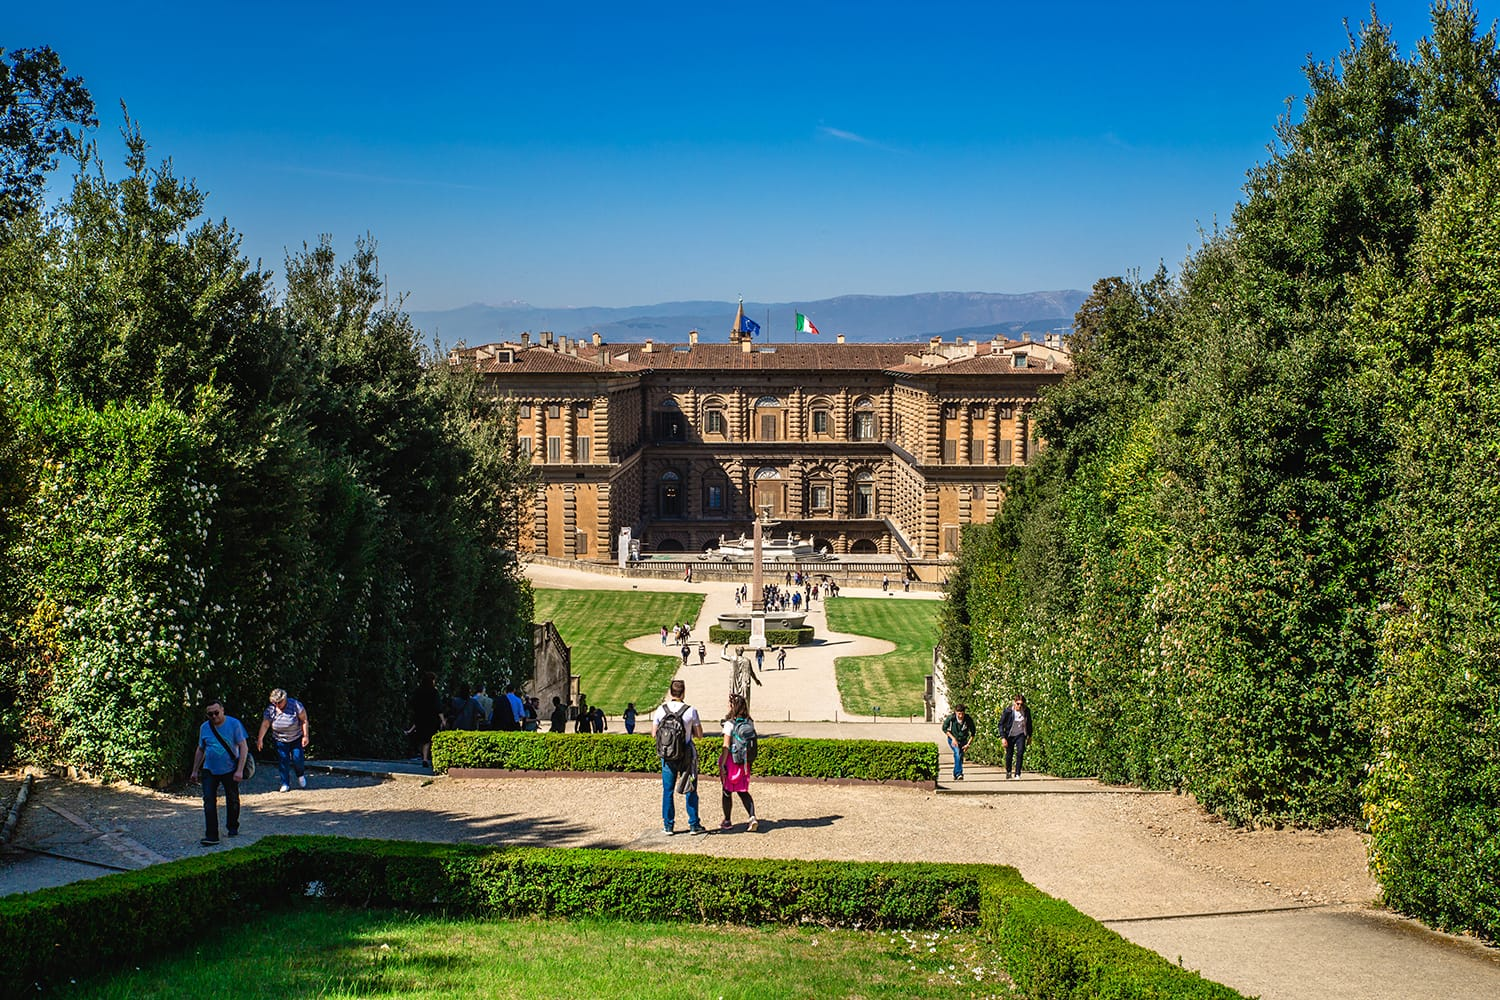 Tourists in Wonderful Boboli Gardens in Florence, Italy